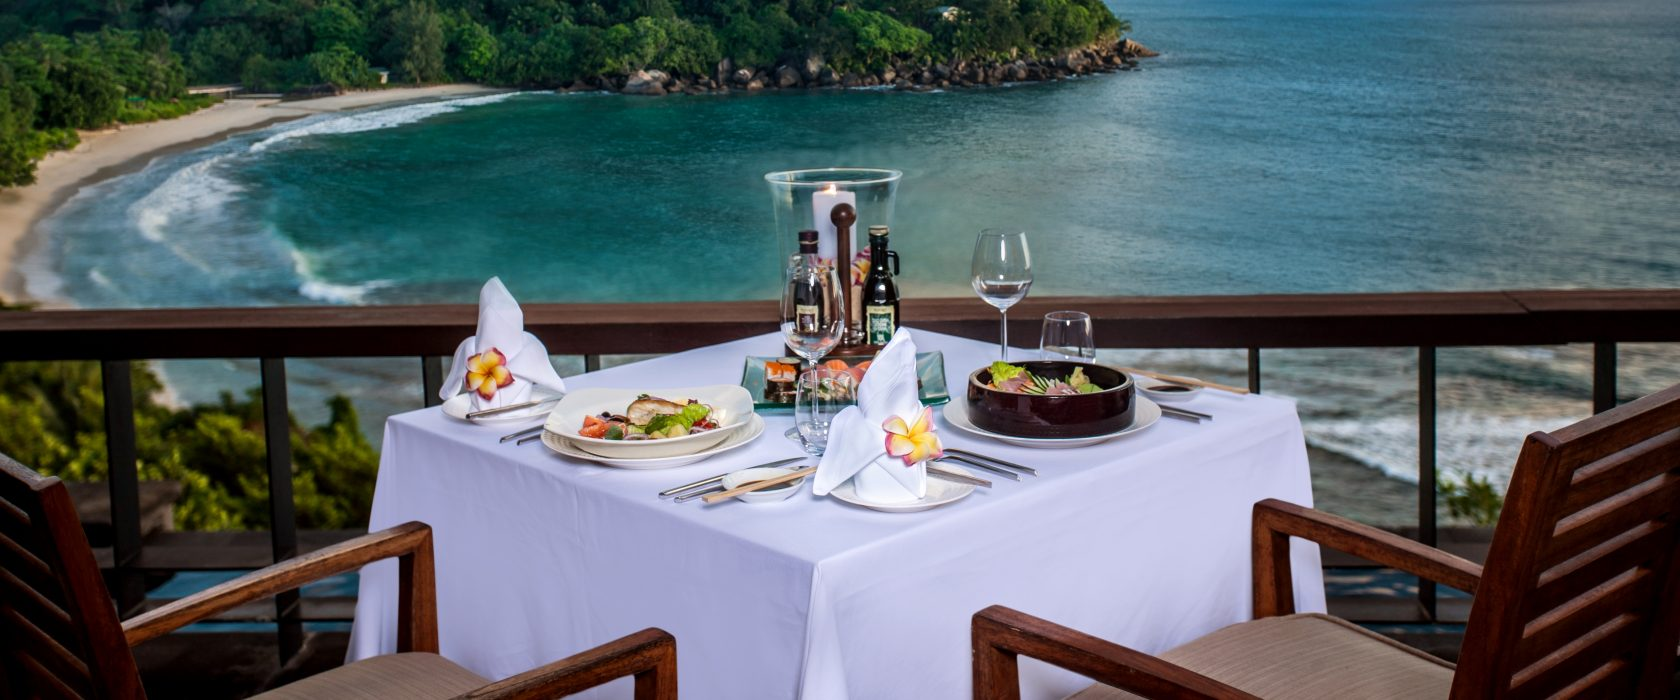 Dining On A Terrace Overlooking The Ocean And Island